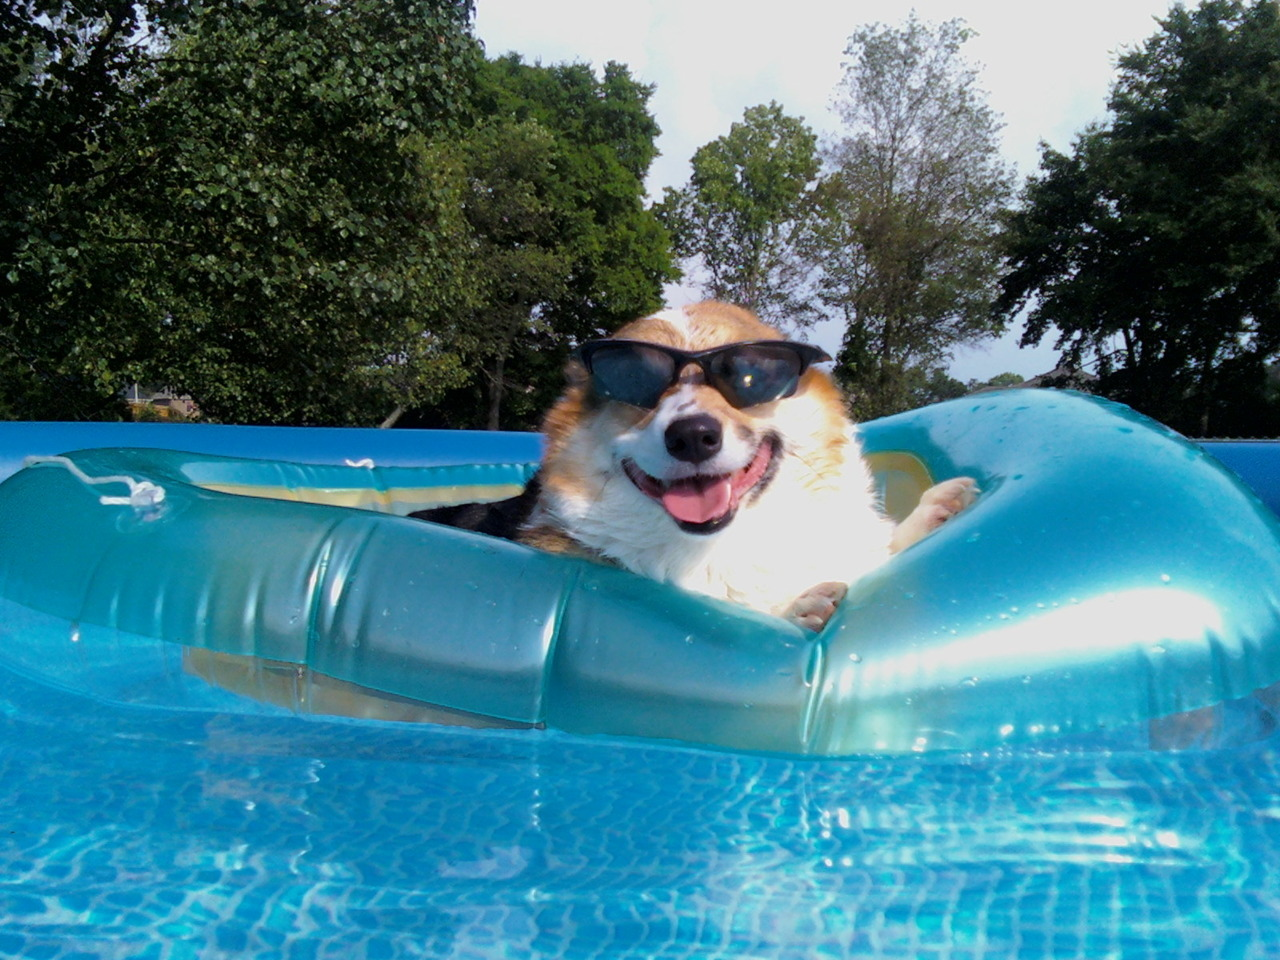 Cash Pool O Que Significa Dog Pool Sunglasses Chill Dogs Chillin Thebsdboys